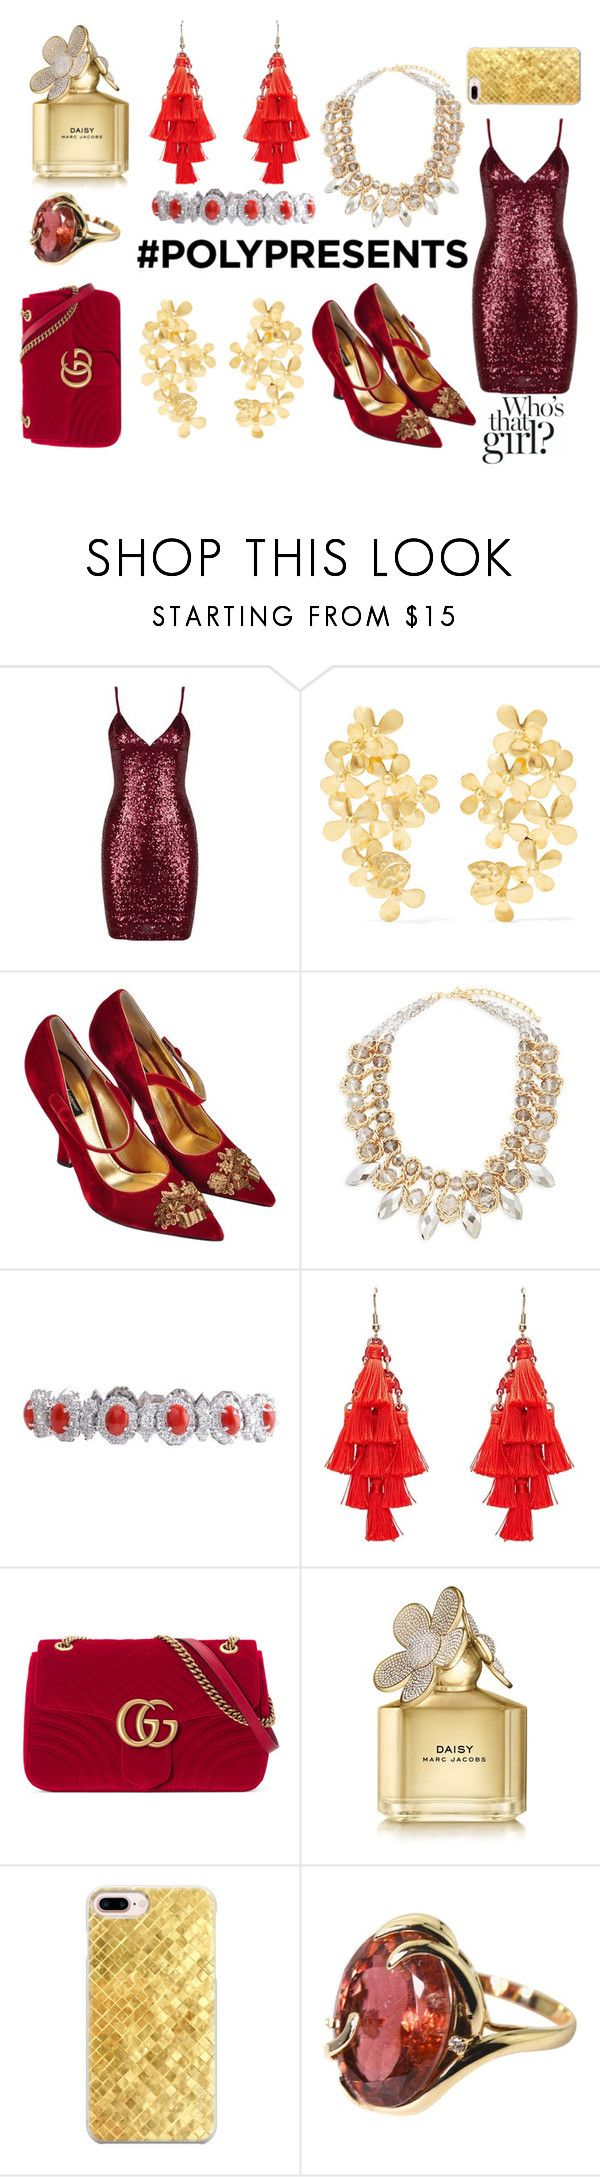 """#PolyPresents: Statement Jewelry"" by gwenyth-brass ❤ liked on Polyvore featuring Pippa Small, Dolce&Gabbana, Saks Fifth Avenue, Gucci, Marc Jacobs, Casetify, Gemjunky, contestentry and polyPresents"